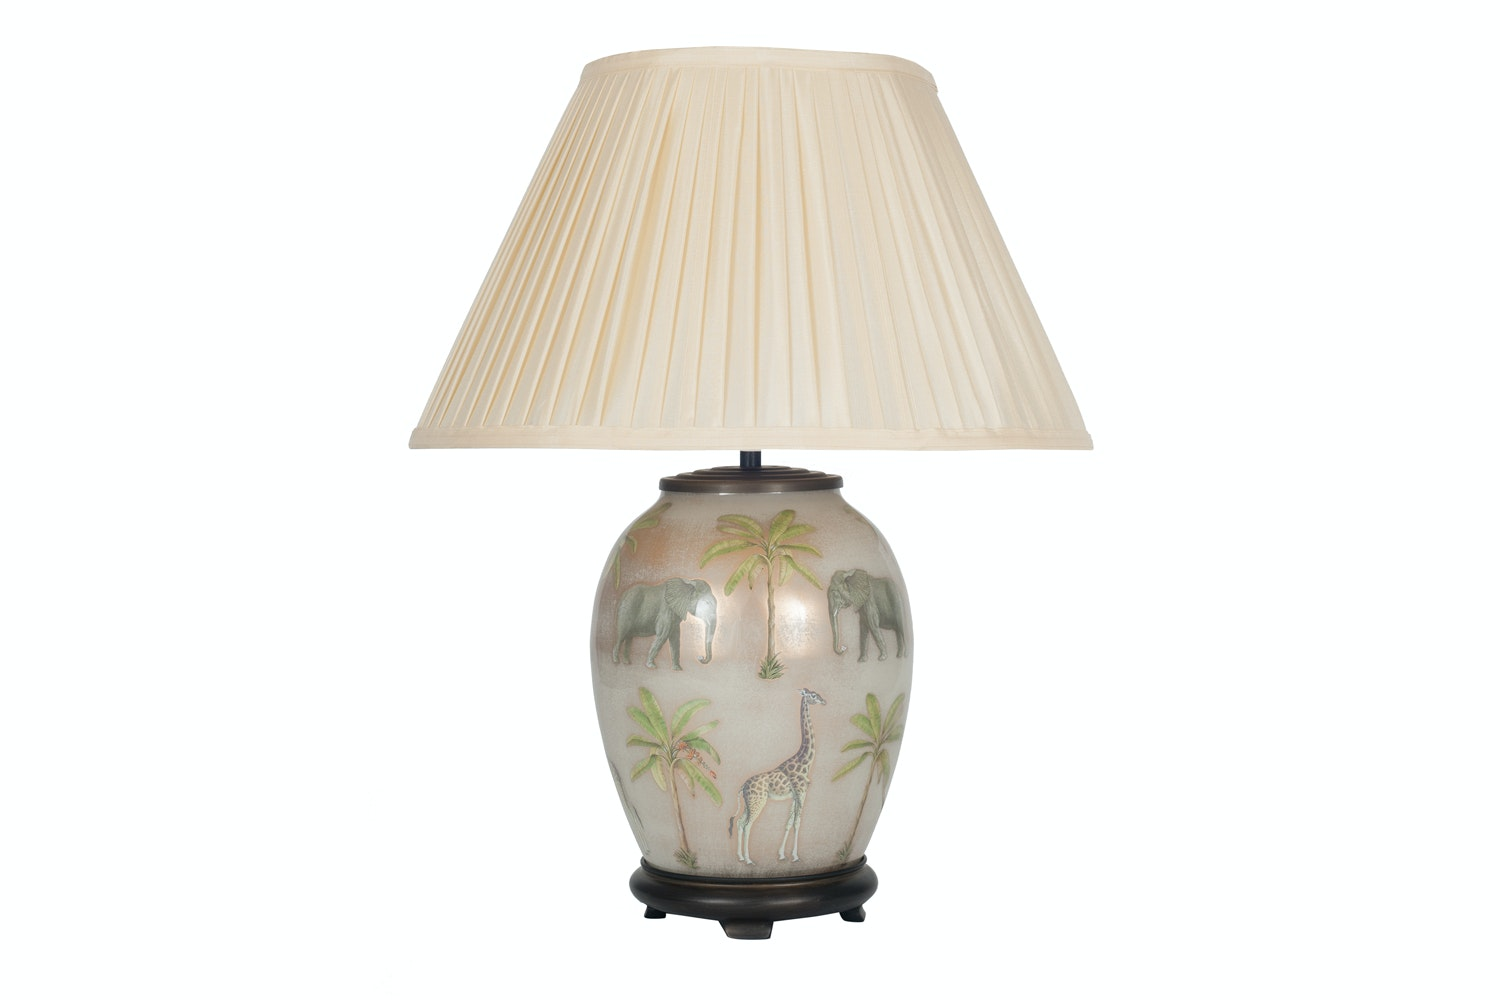 J Worrall Safari Pleat Shade Table Lamp | Medium